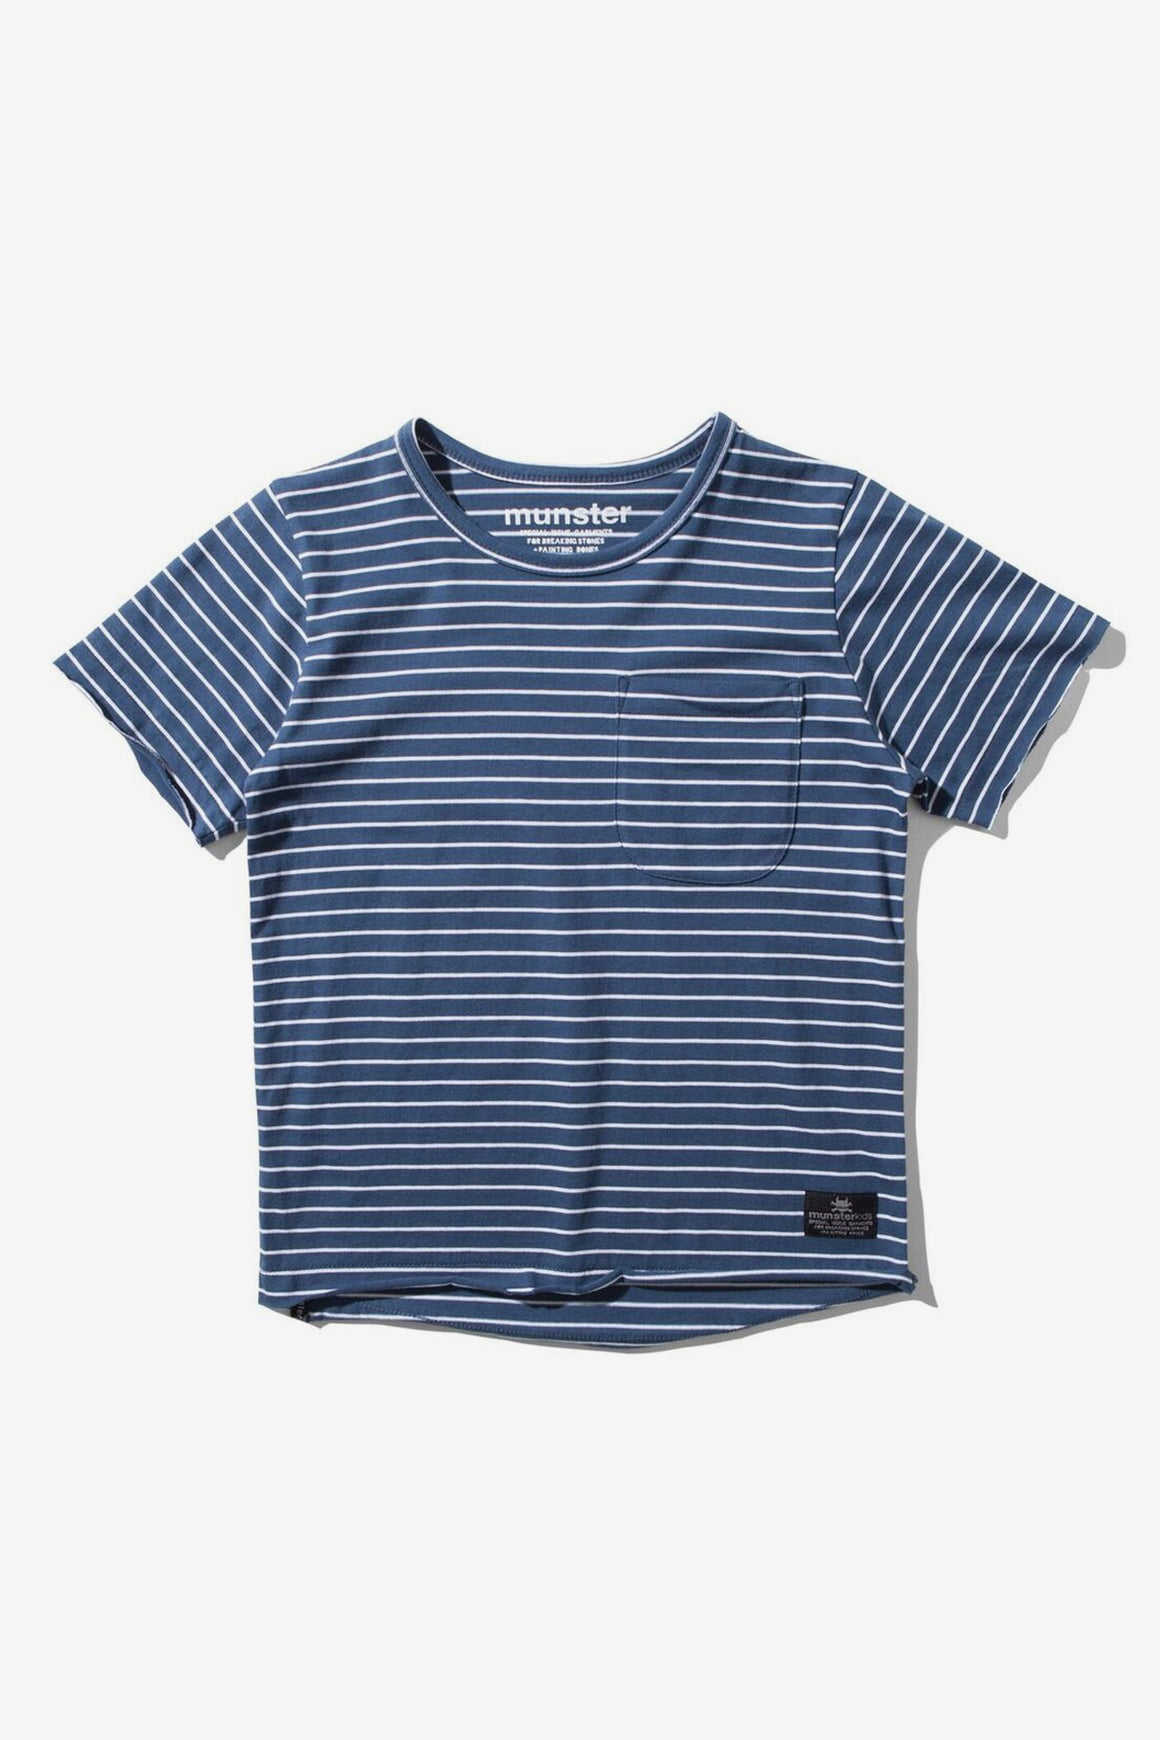 Munster Kids Flatline Tee - Navy